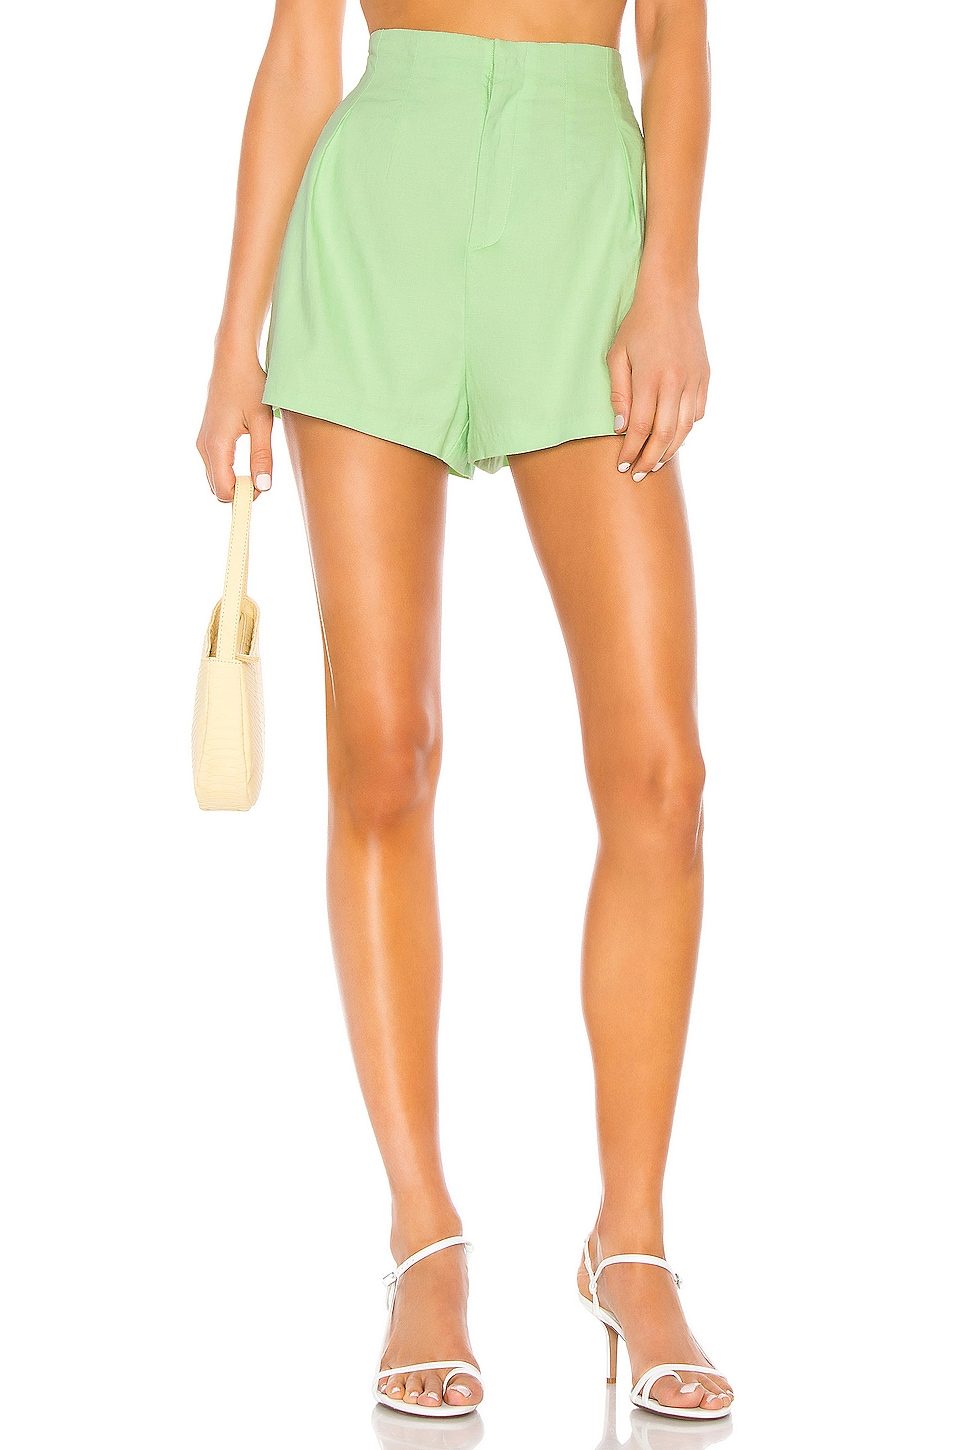 Camila Coelho Hayden Short in Soft Mint